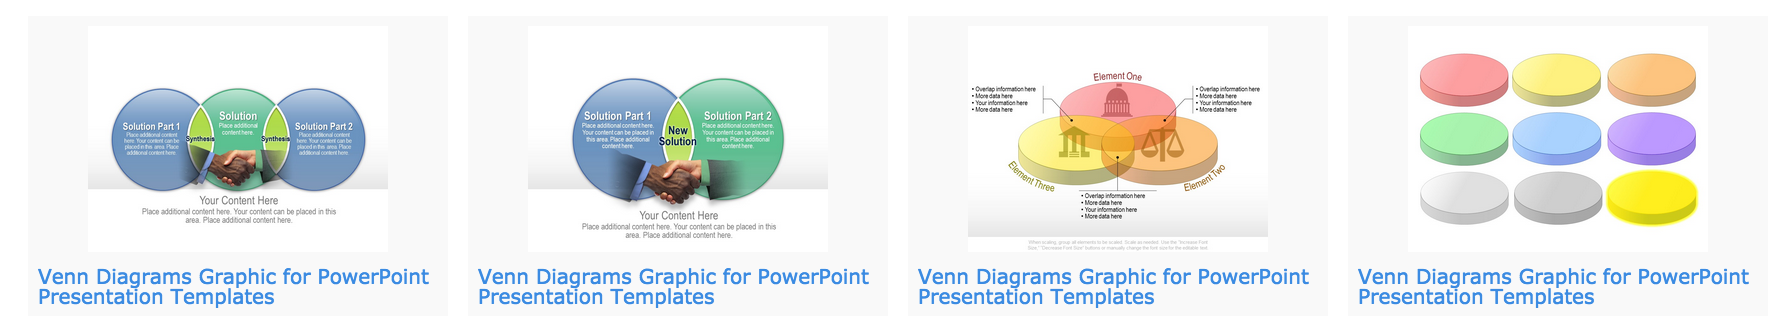 download venn diagram templates for powerpoint, Modern powerpoint